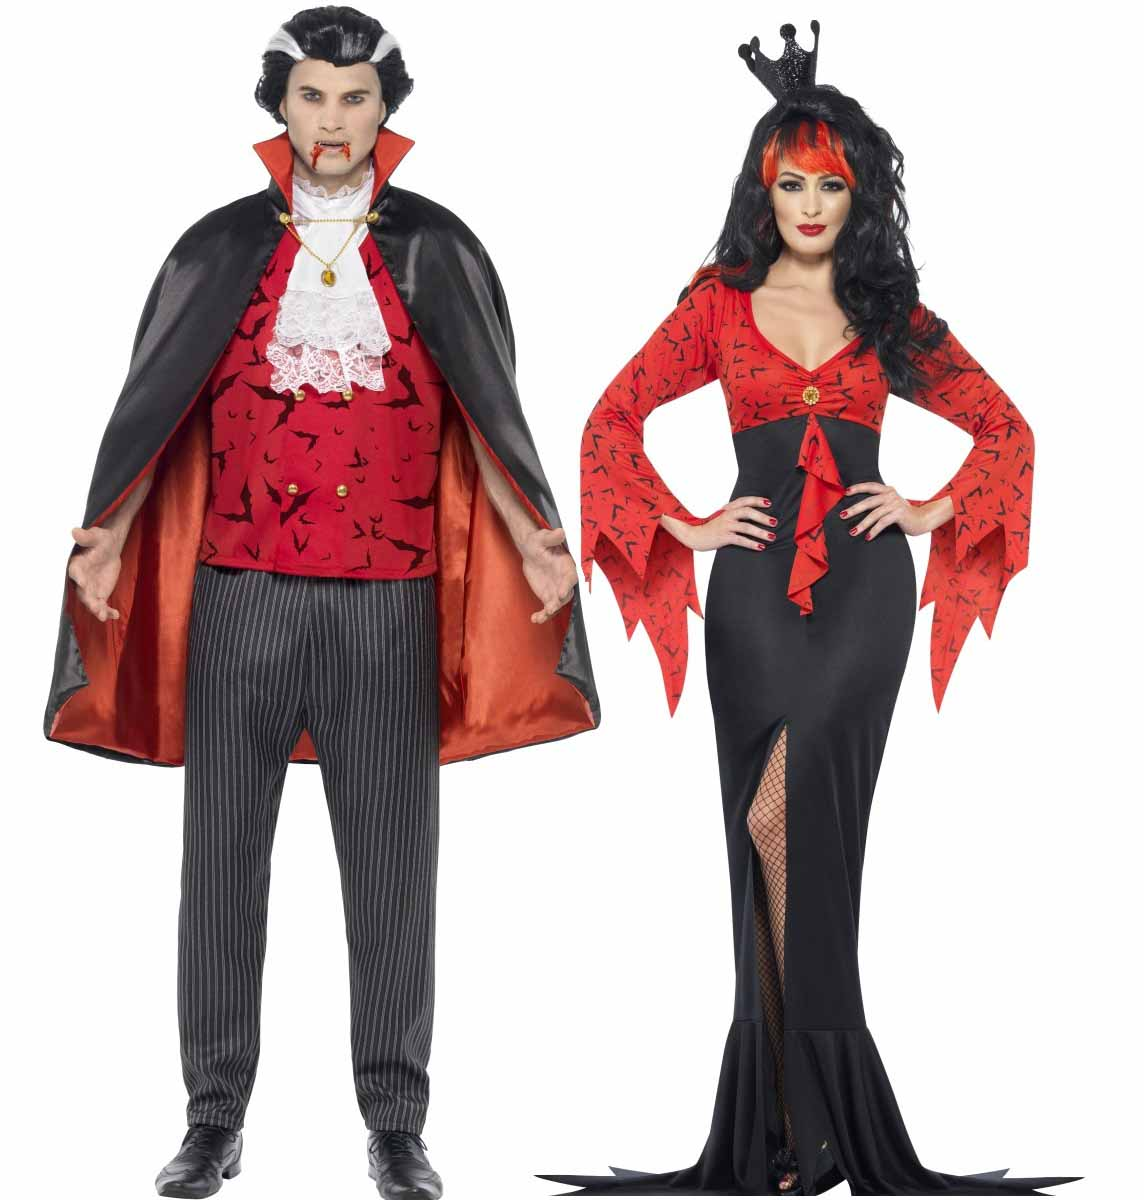 Vampire Couple Halloween Costumes.27 Couple Halloween Costumes For You Your Partner Livinghours